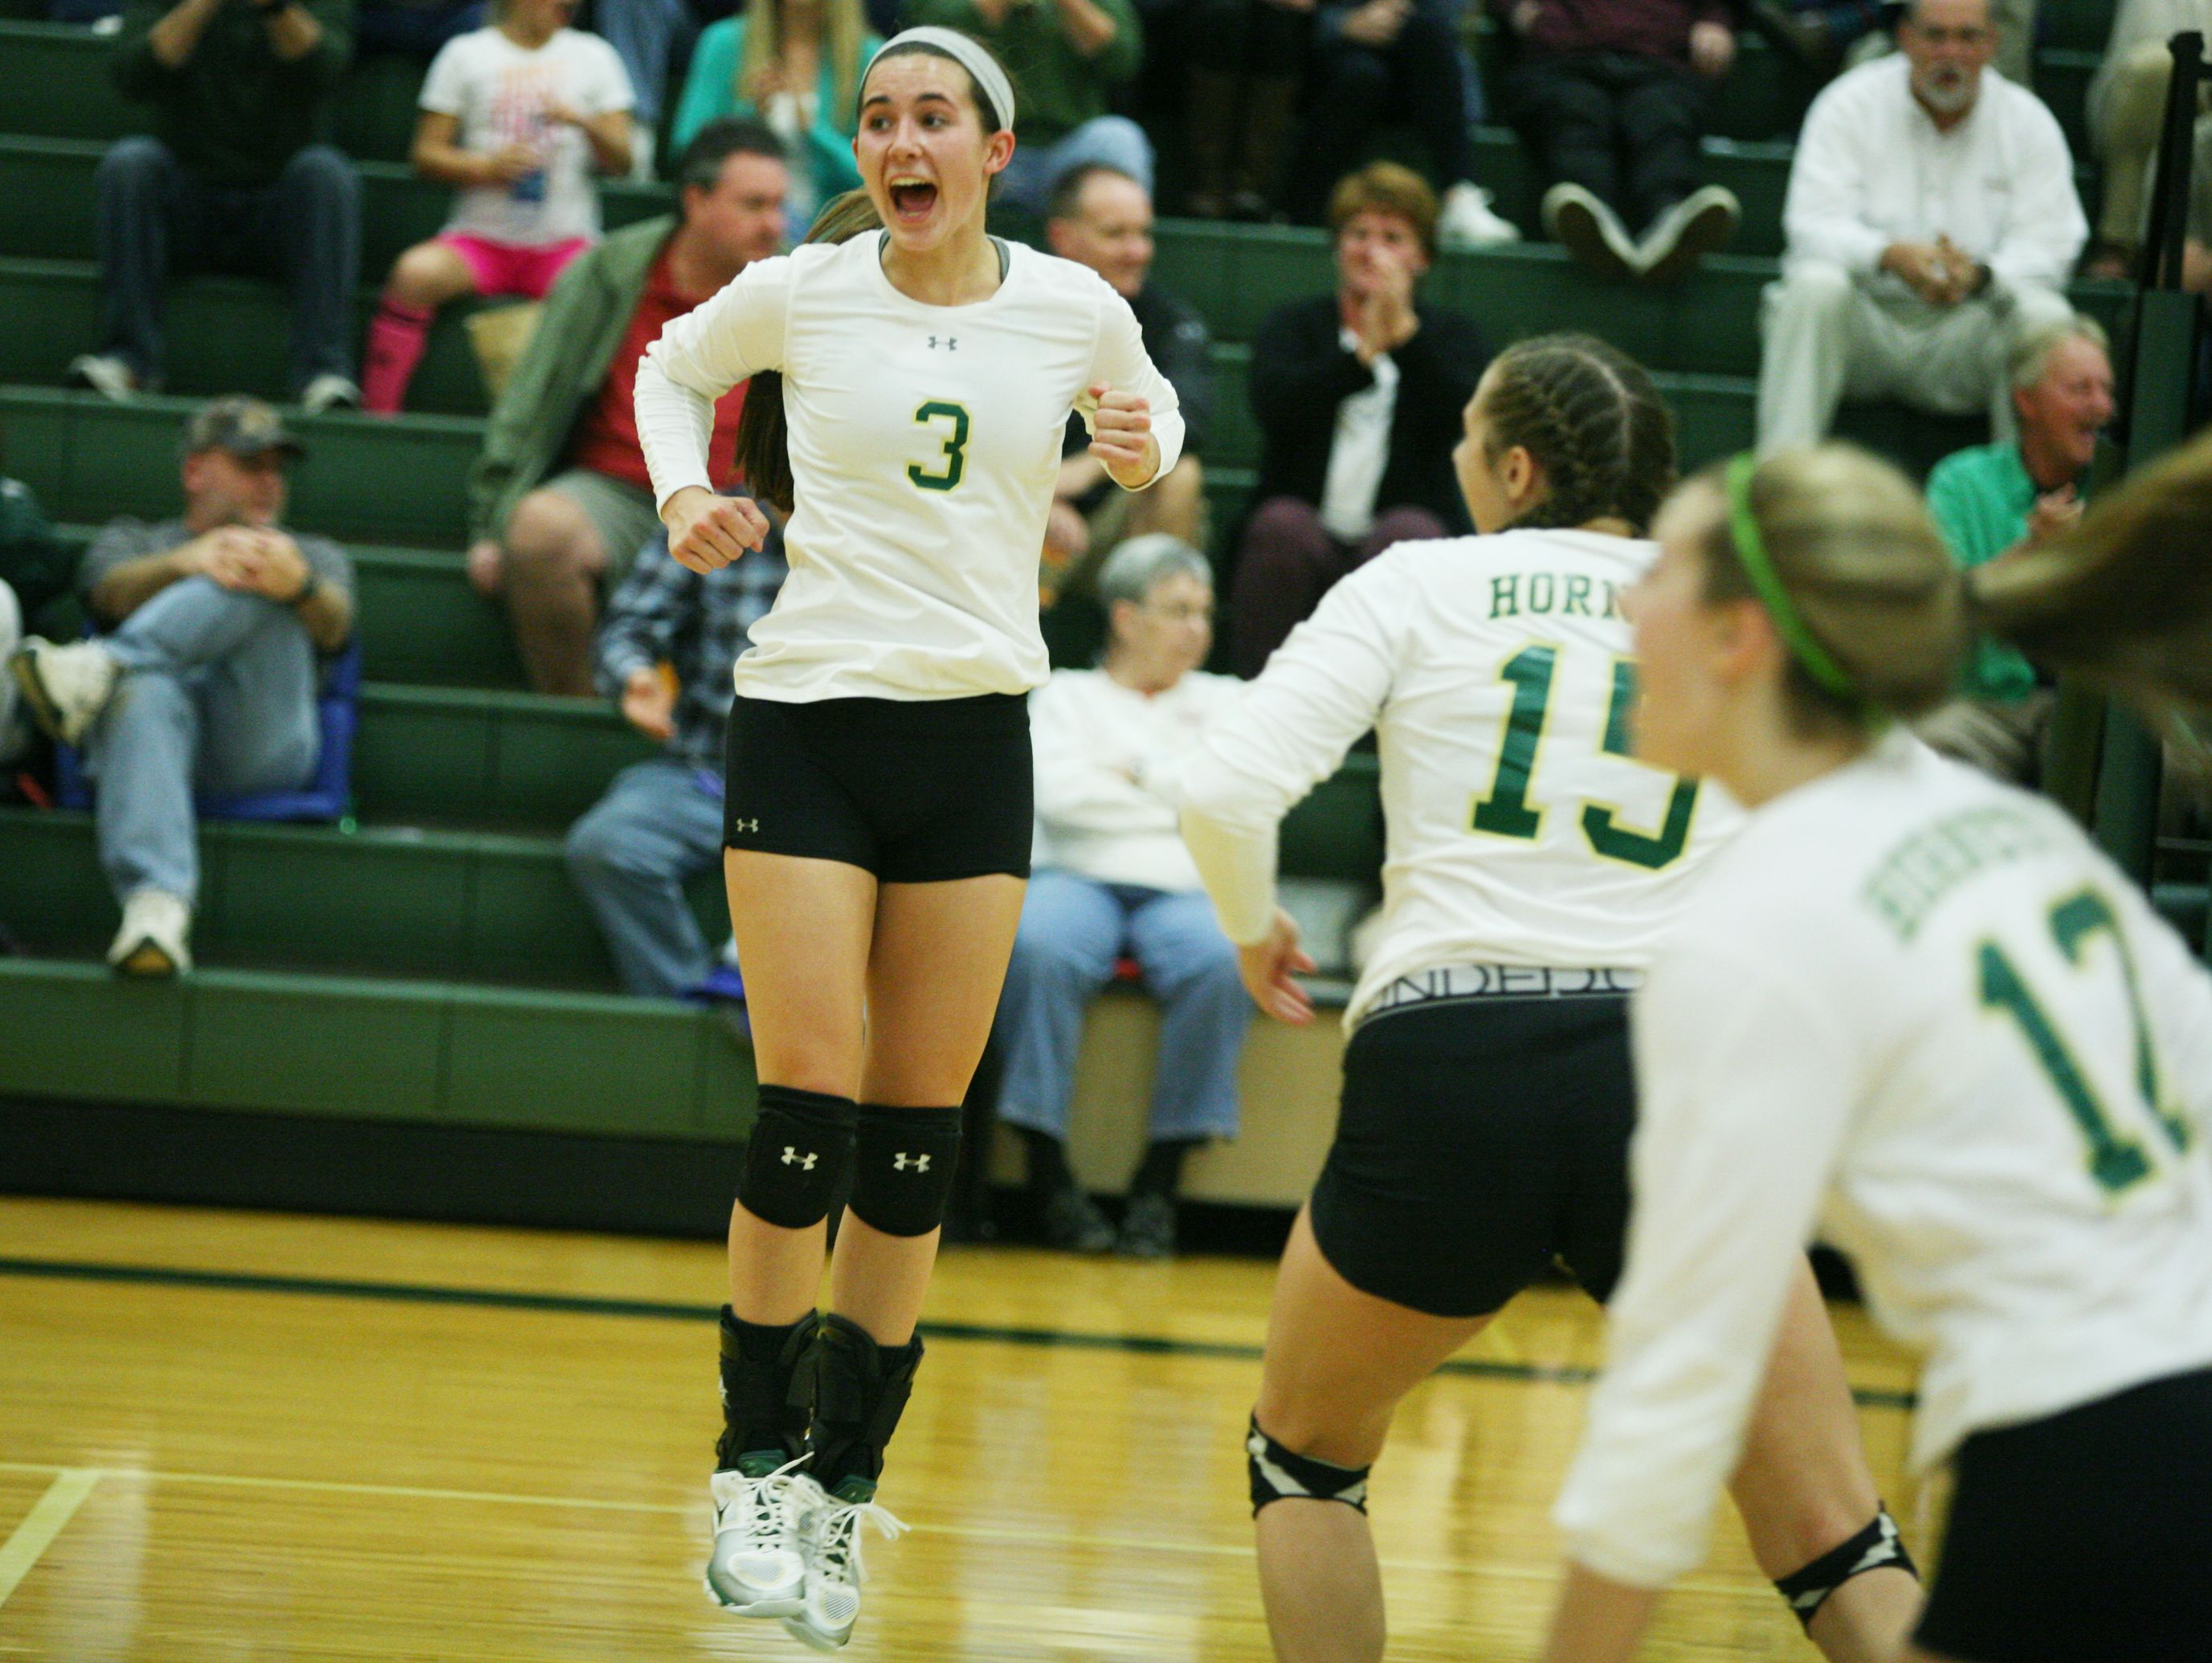 Wilson Memorial's Hannah Johnson celebrates as the Green Hornets win the first game against East Rockingham during the Conference 36 quarterfinal match at Wilson Memorial in Fishersville on Tuesday, Nov. 1, 2016.